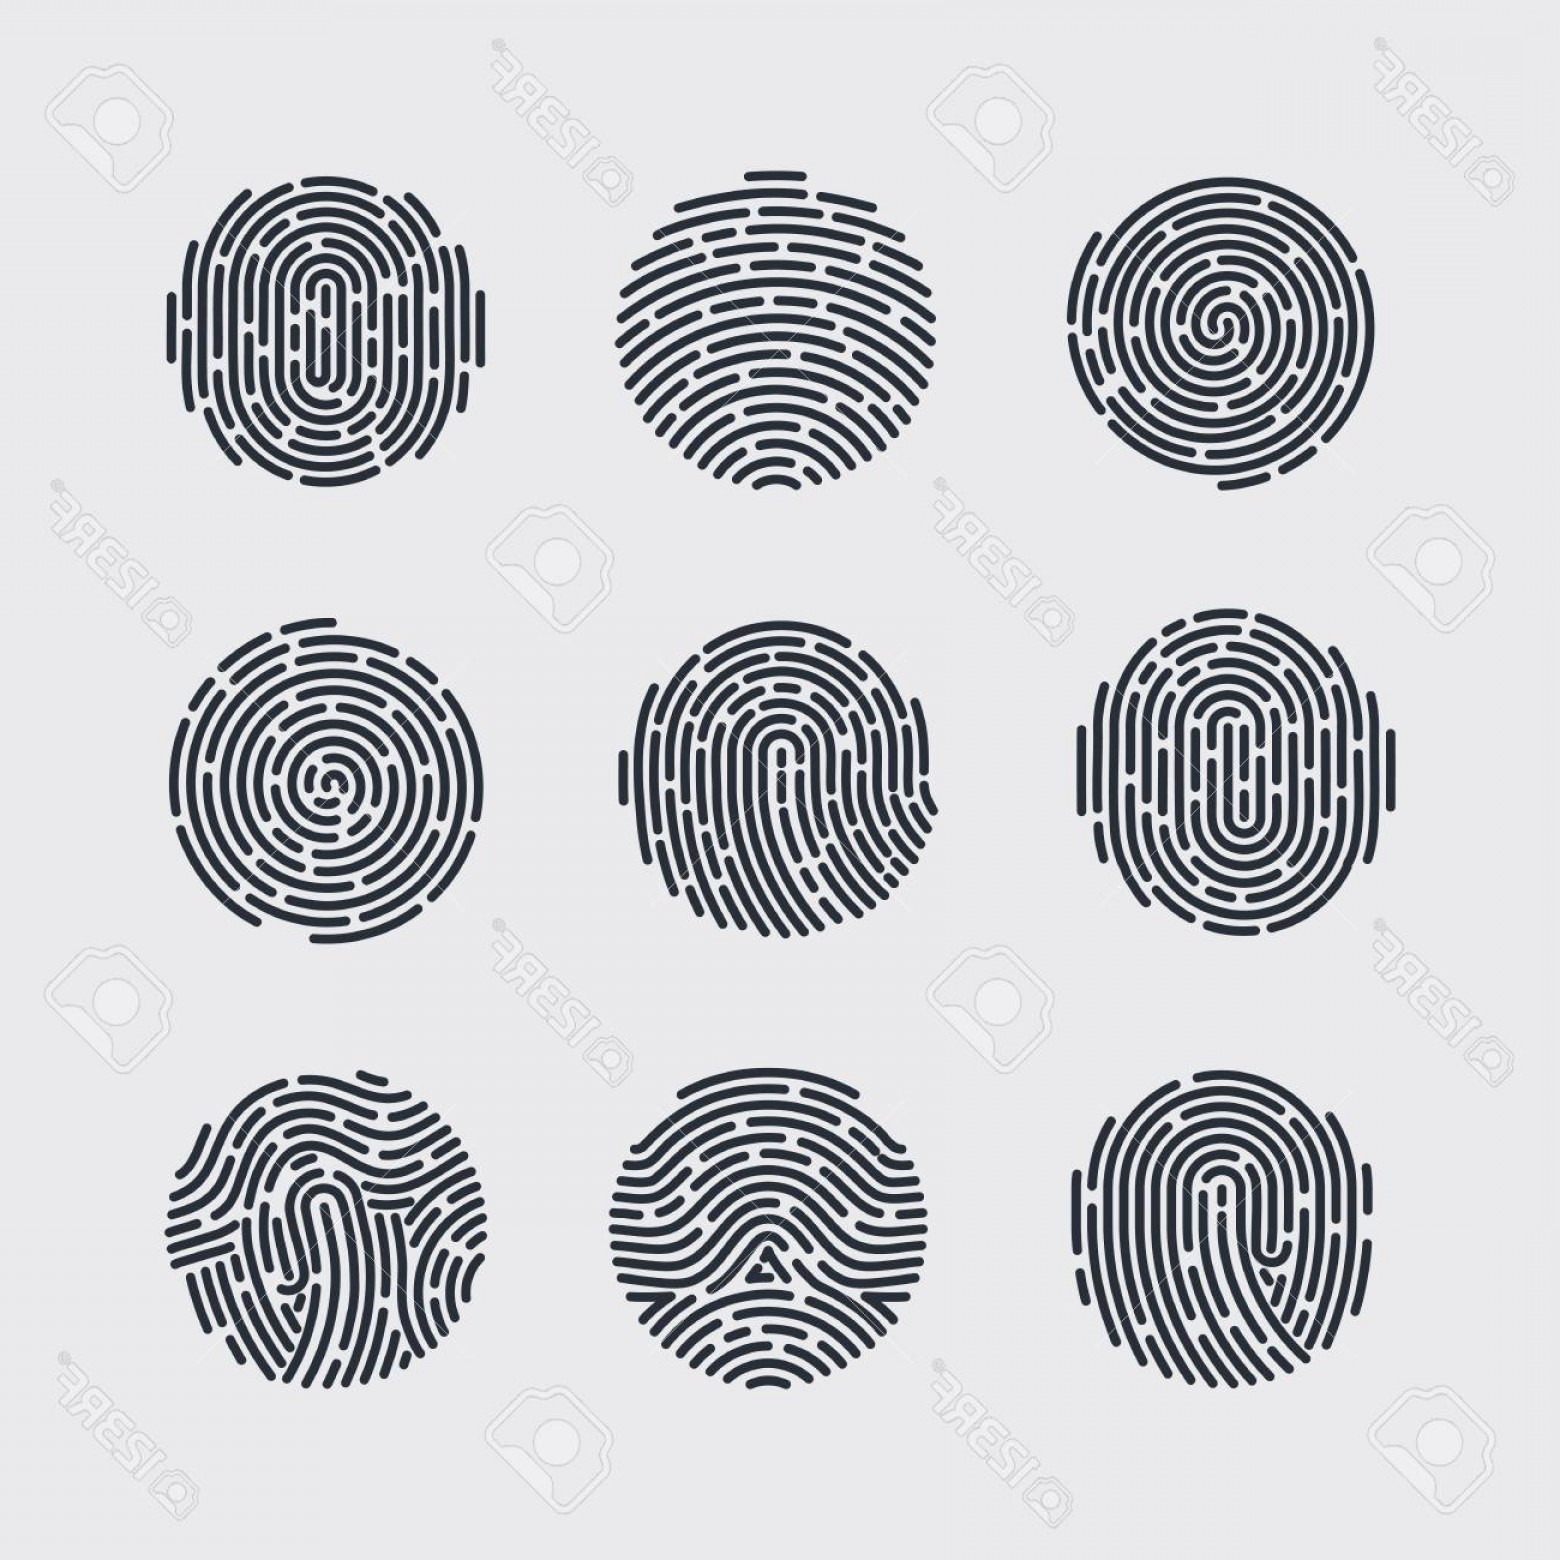 Security Vector Patterns: Photostock Vector Round Fingerprint Patterns For Identity Person Security Id On Gray For Design